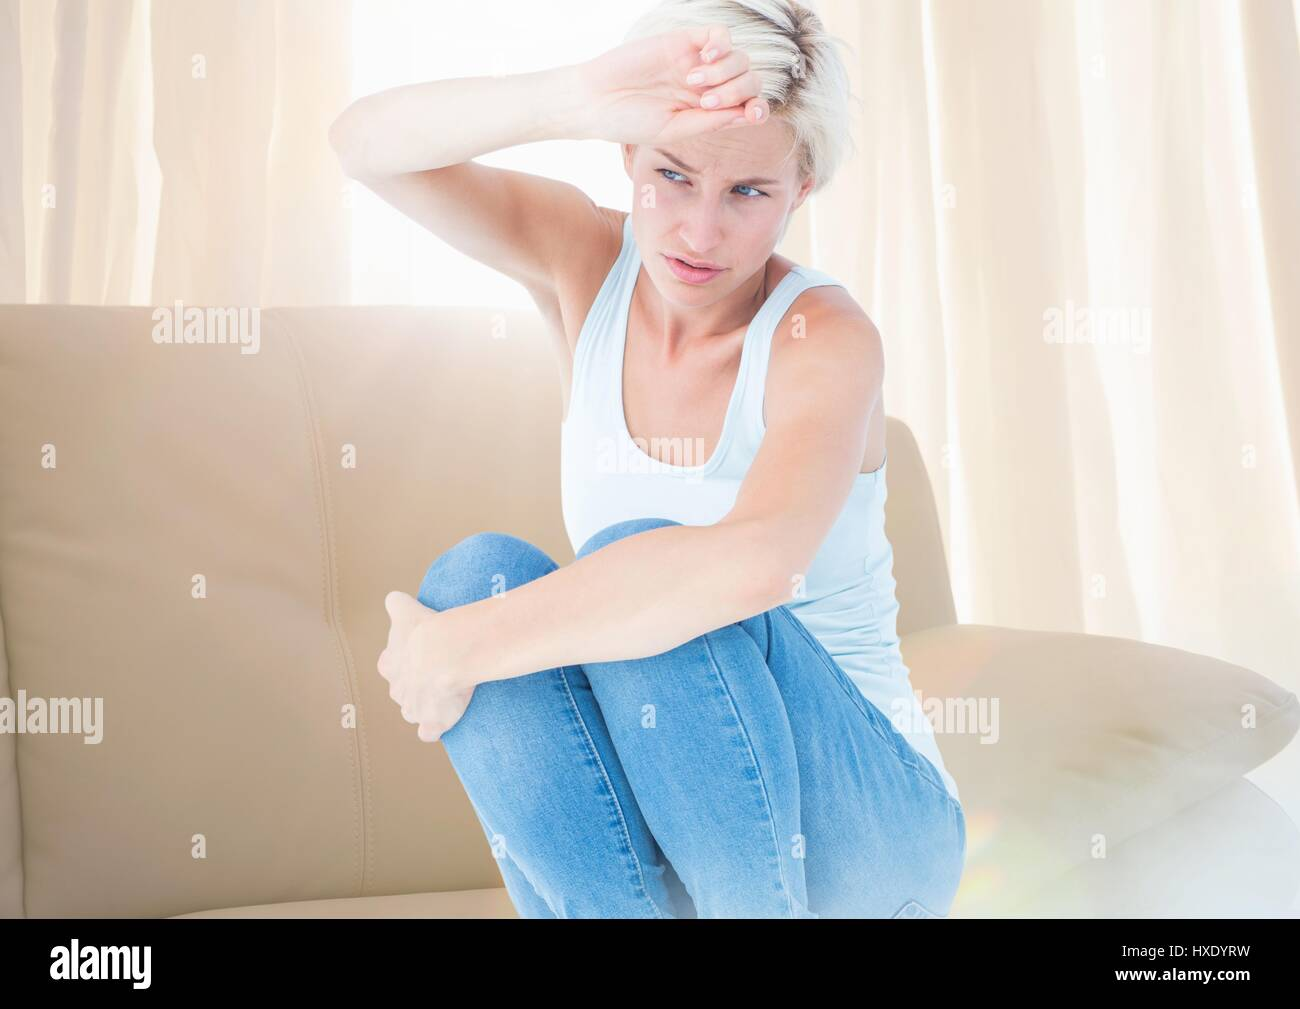 Digital composite of Sad  distressed afraid woman crouched near window light - Stock Image